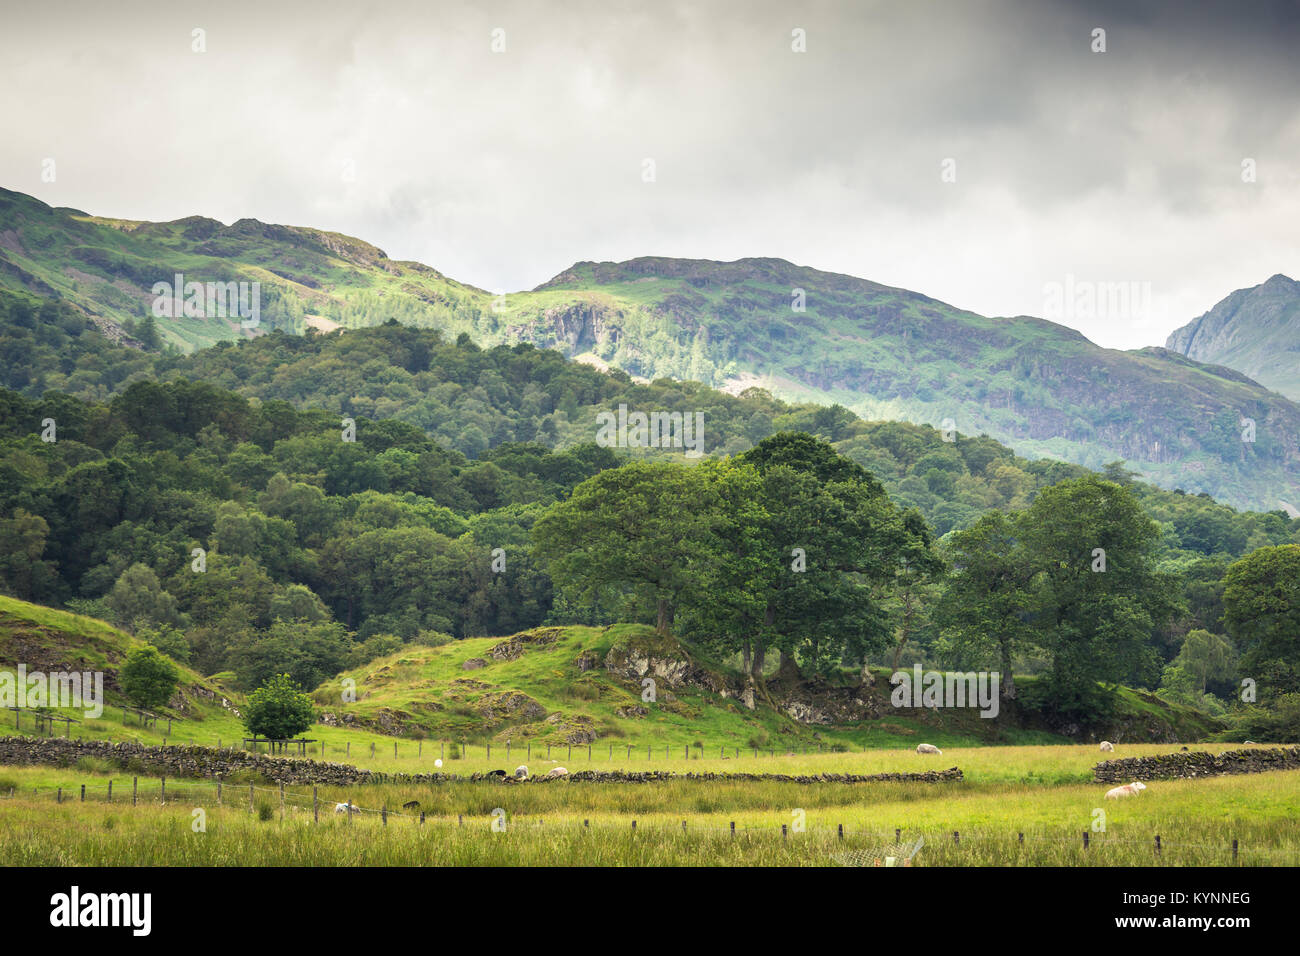 Beautiful vista of the English countryside with sheep grazing in the meadow. - Stock Image